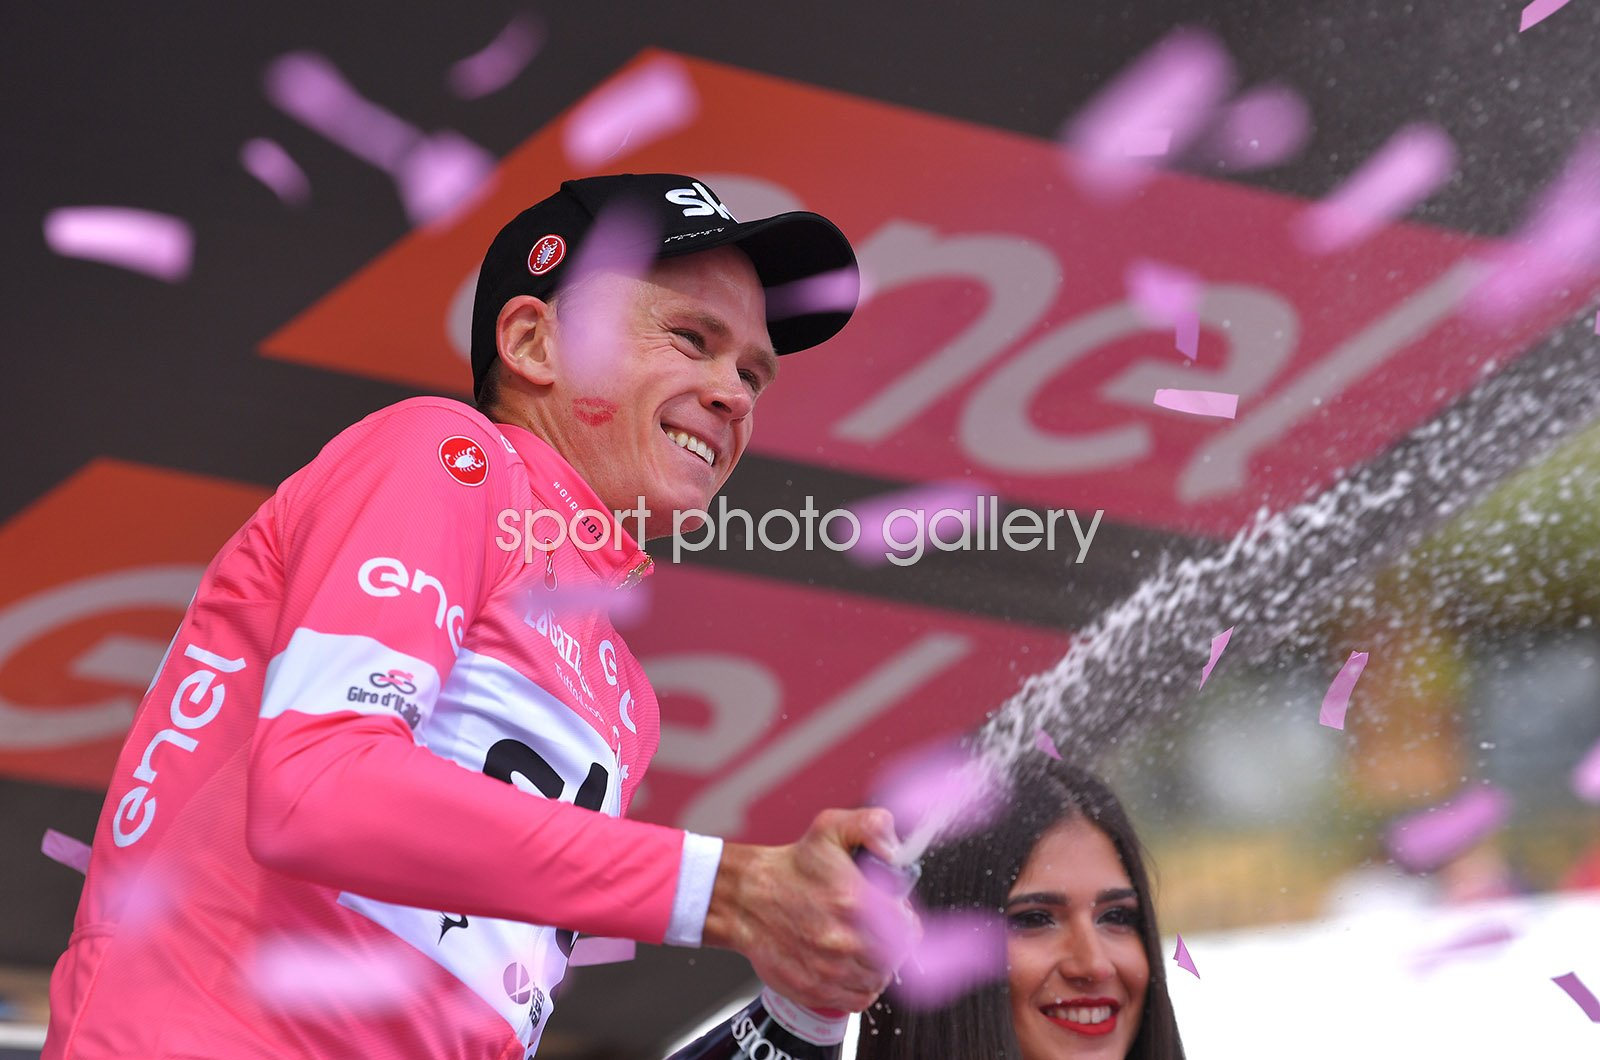 Chris Froome Sky Pink Jersey Giro Stage 19 2018